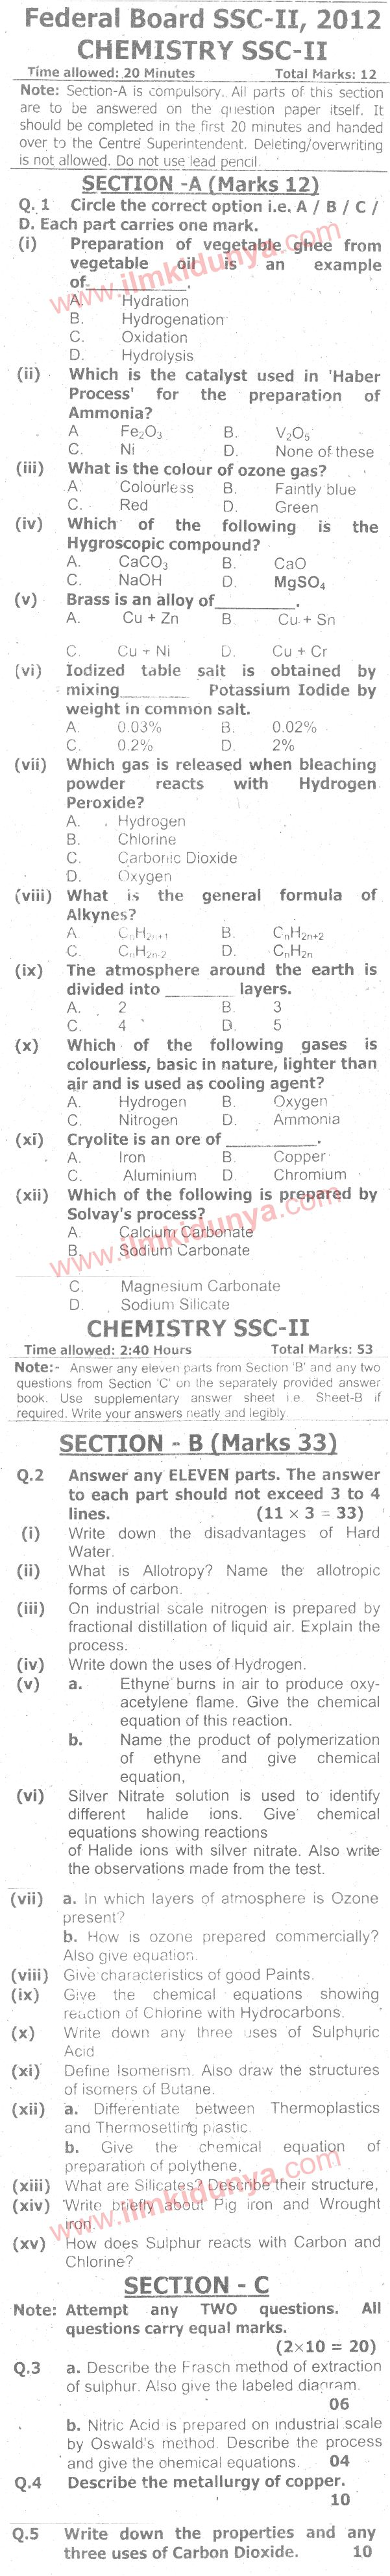 9th class chemistry paper 2013 federal board